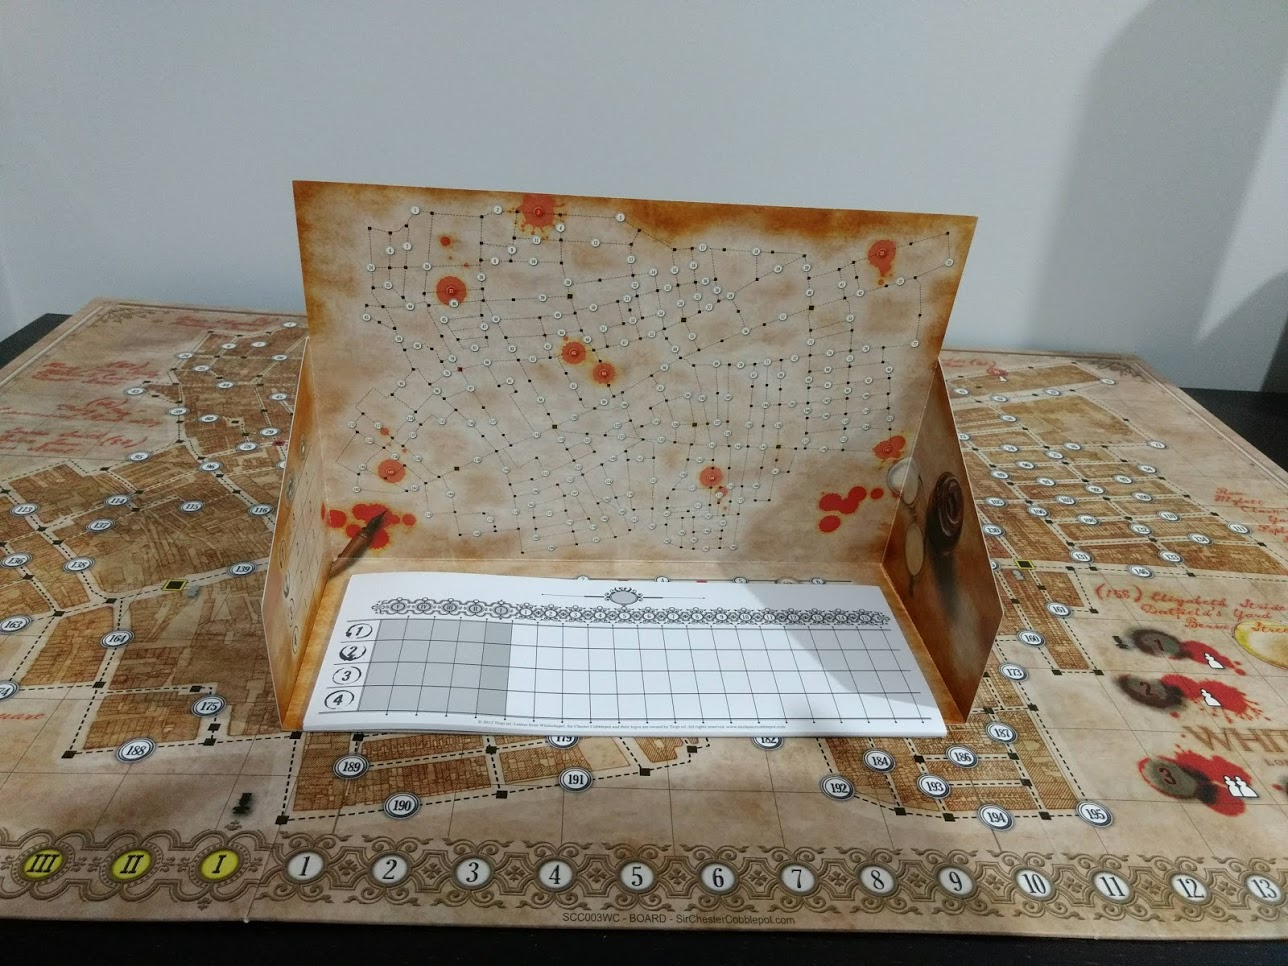 Letters From Whitechapel game board, with the compartment hiding Jack's movement set up.